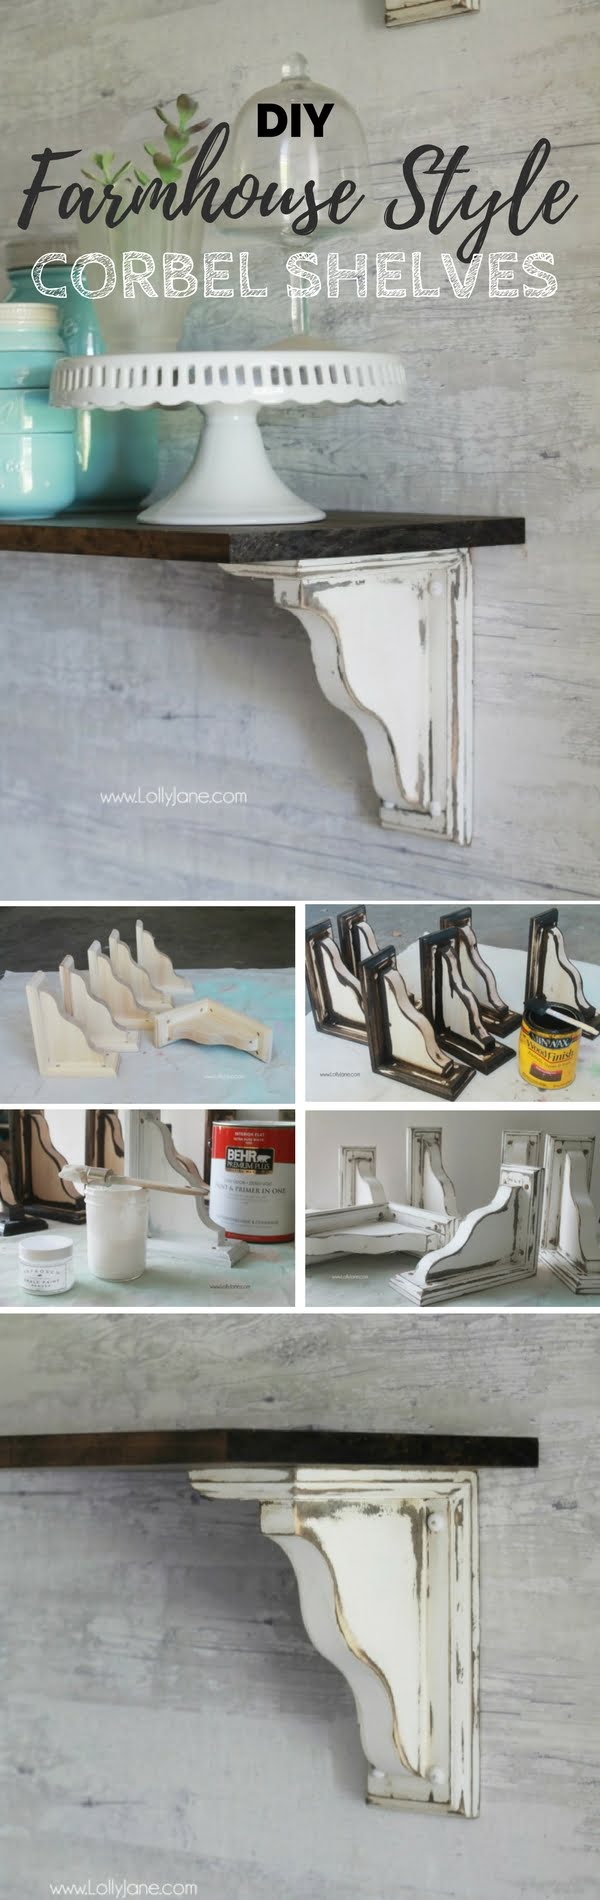 Check out the tutorial:  Farmhouse Style Corbel Shelves